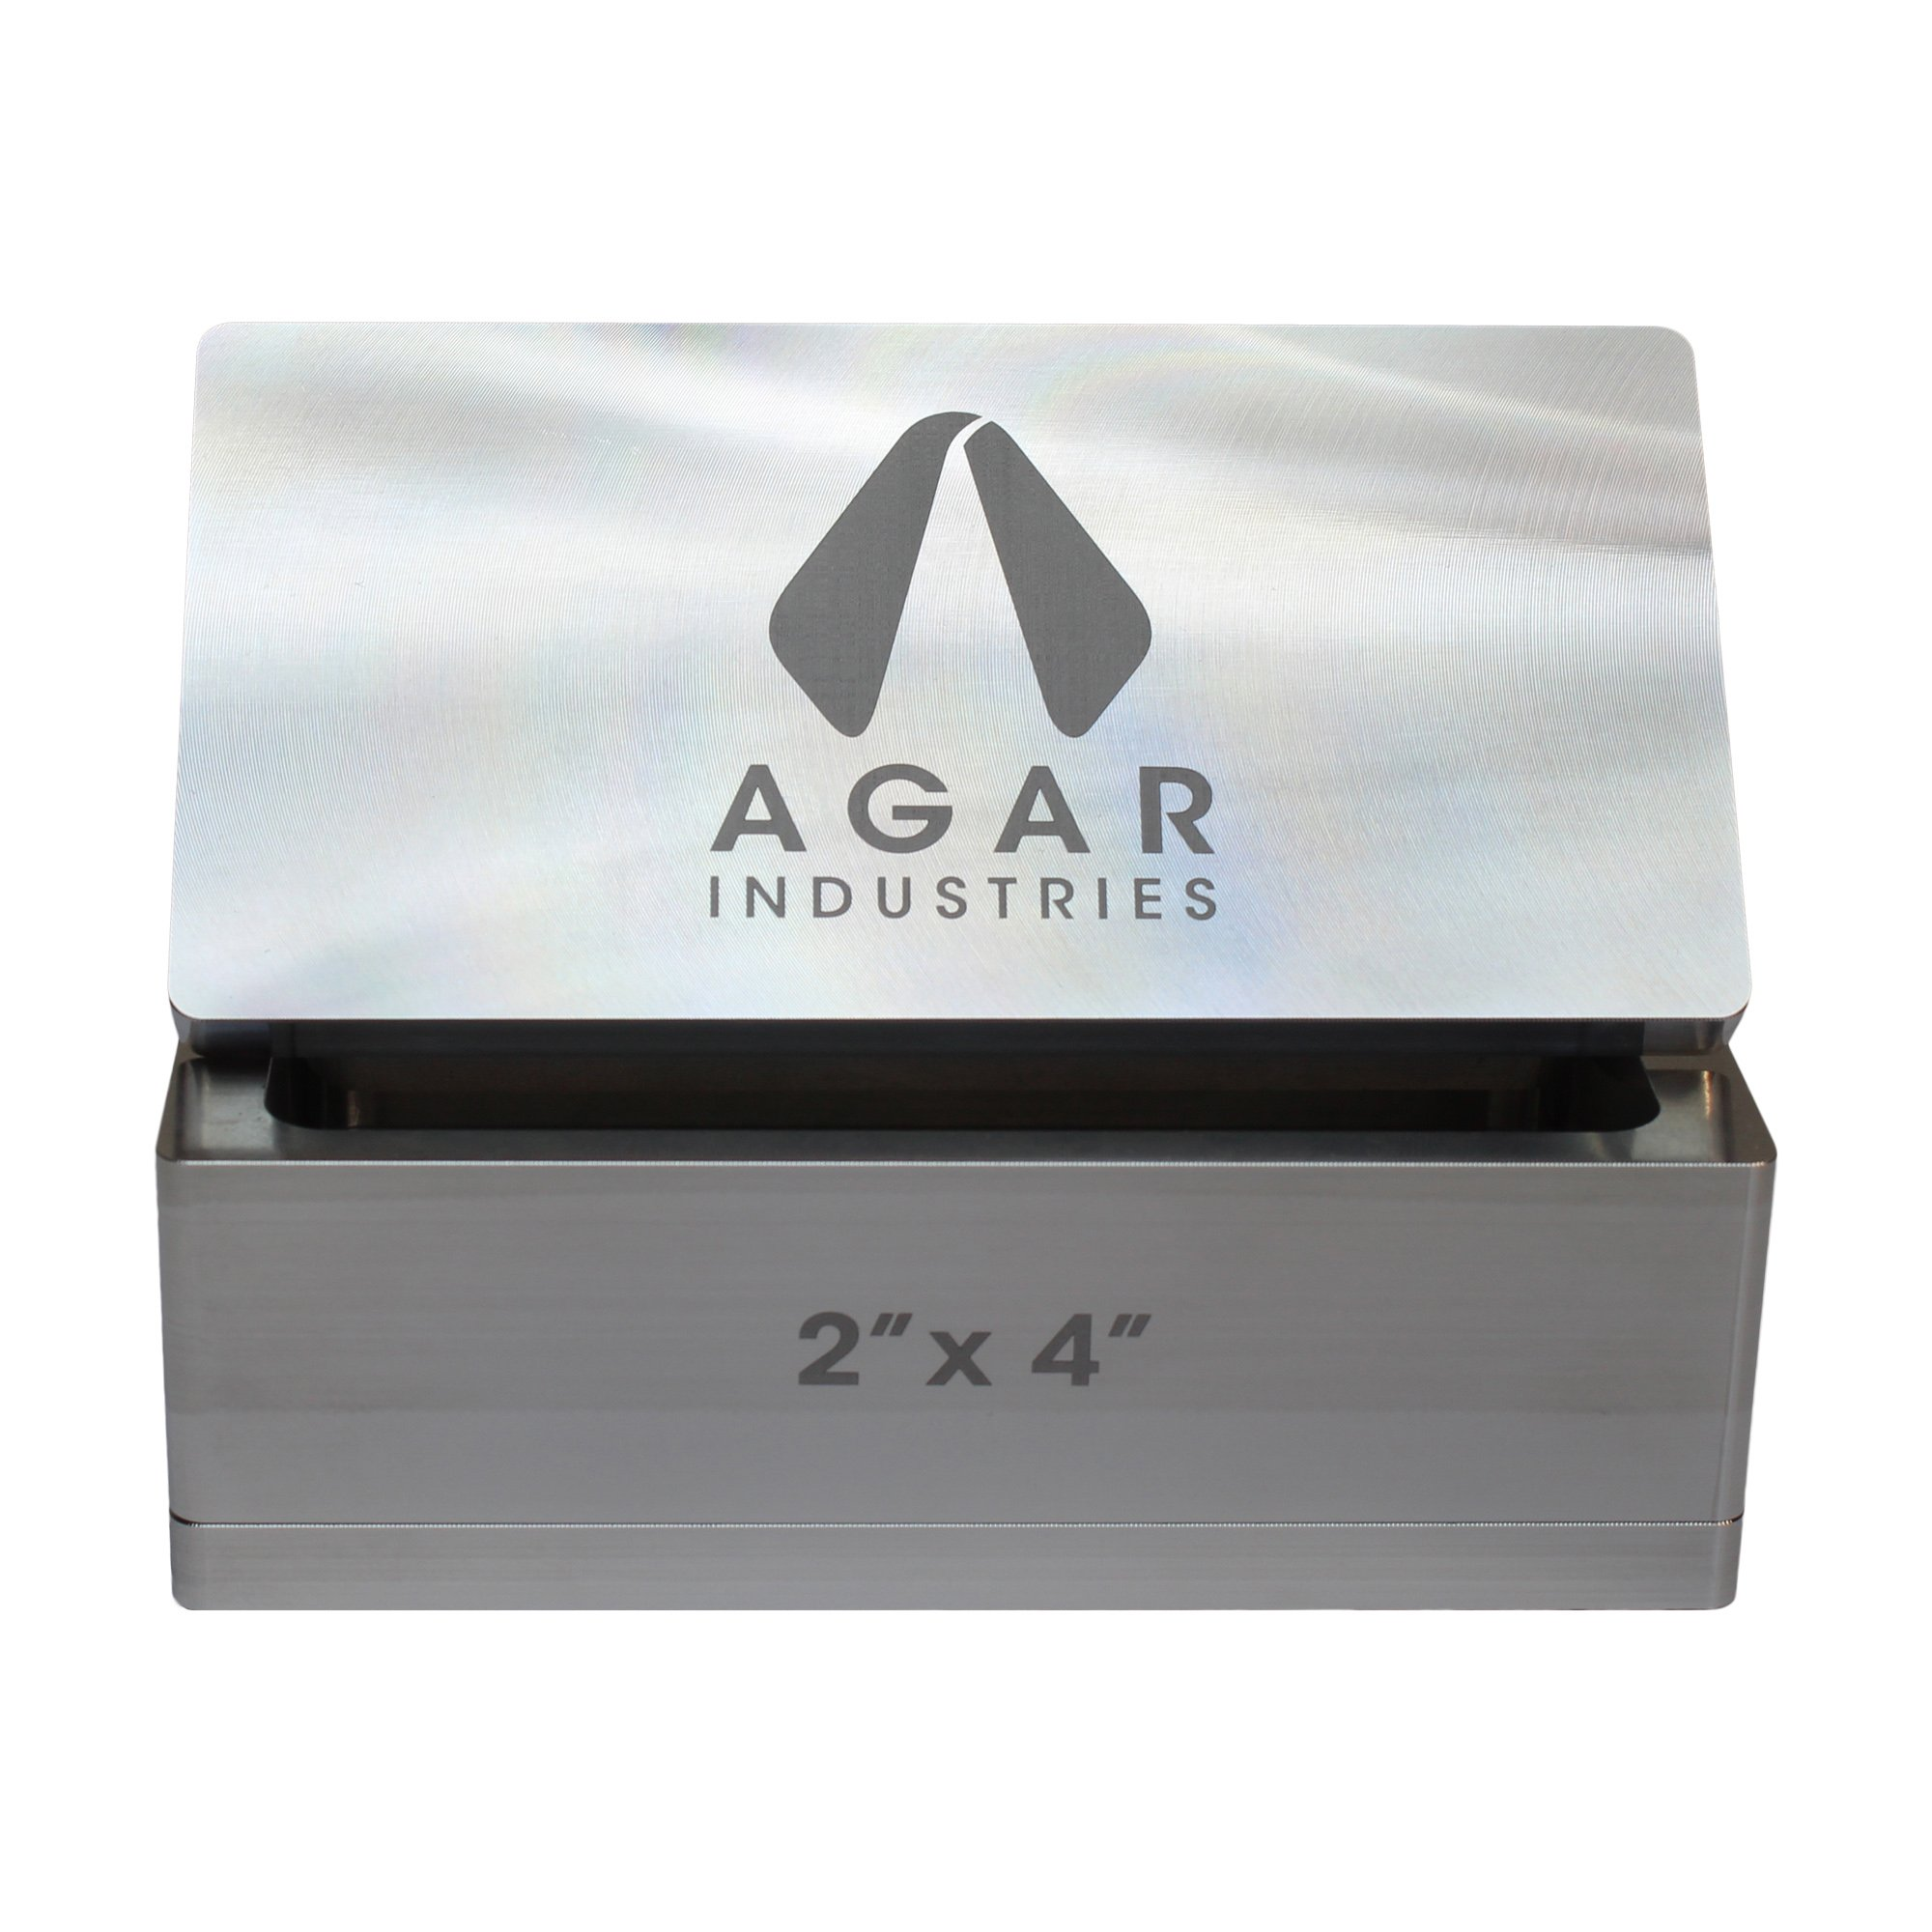 Agar Industries Rosin Pre Press Mold for DIY Solventless Extraction & Pressing - 2'' x 4'' by Agar Industries